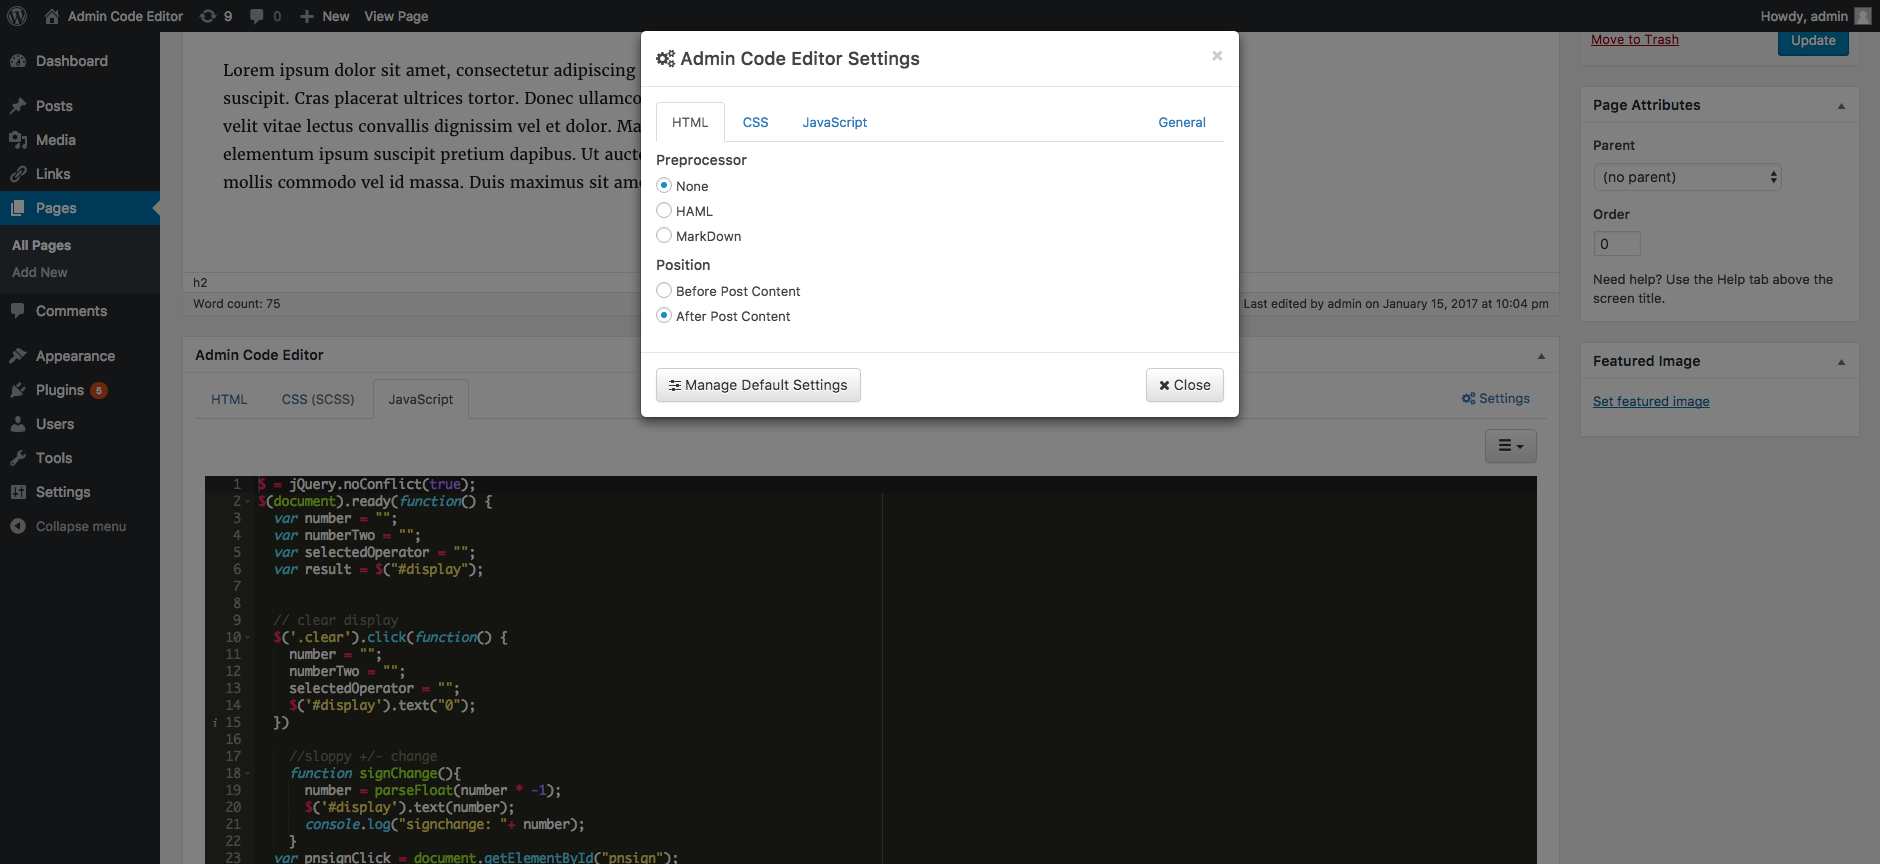 Settings modal window with the HTML tab active.